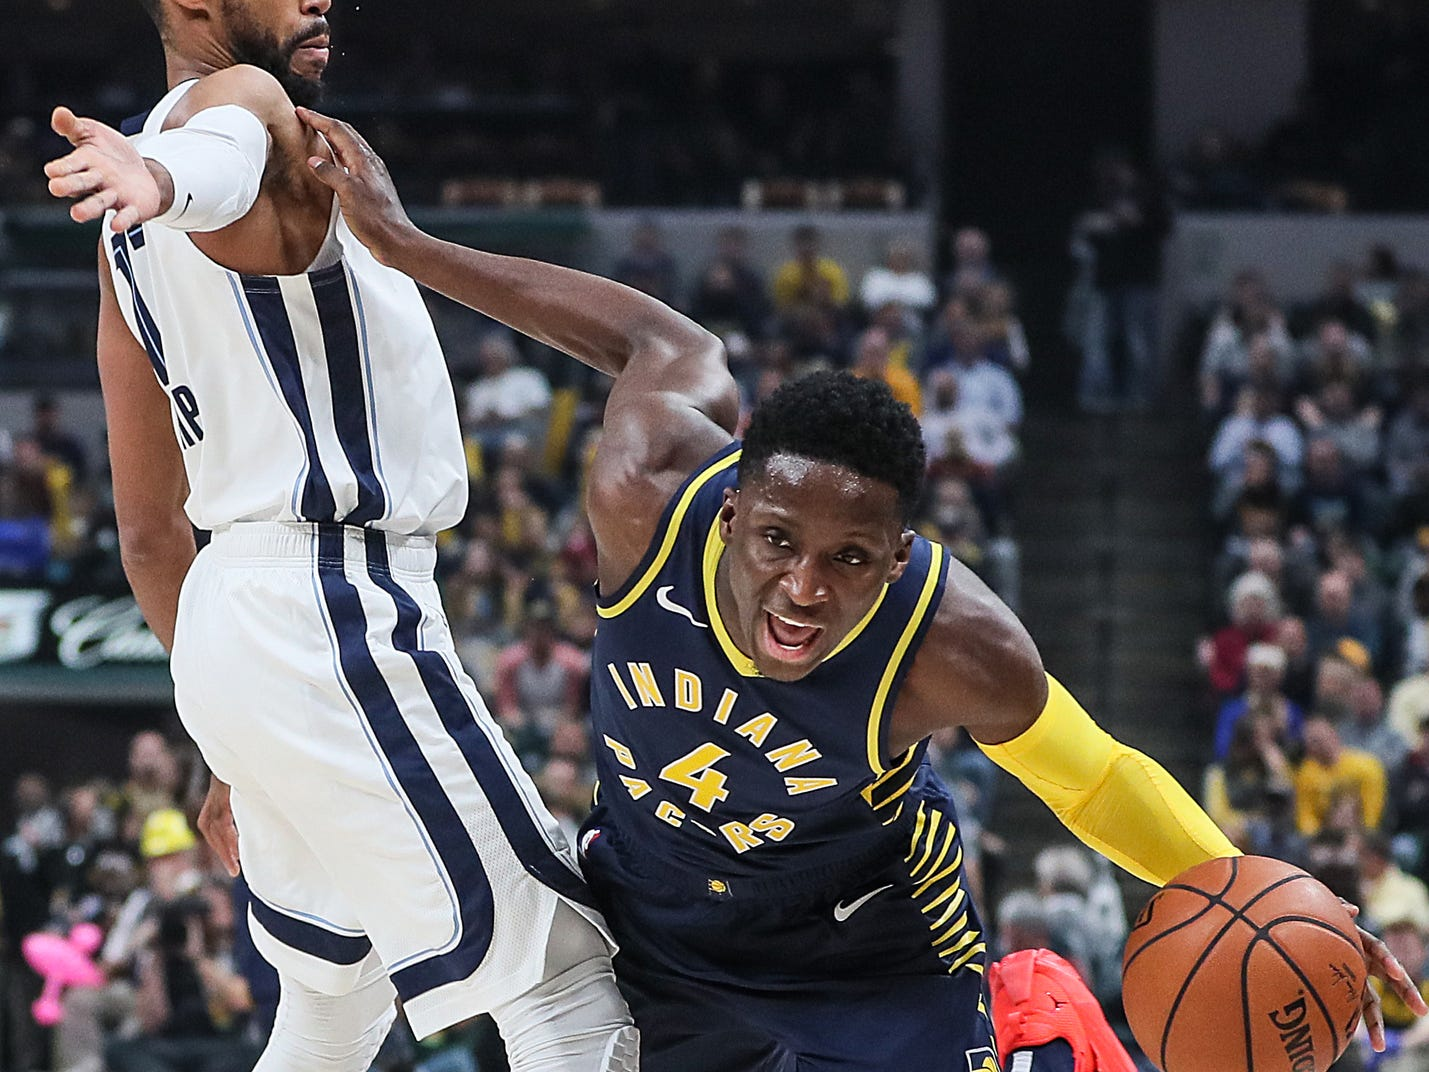 Indiana Pacers guard Victor Oladipo (4) is fouled by Memphis Grizzlies guard Garrett Temple (17) during the first half of the season opener at Banker's Life Fieldhouse in Indianapolis, Wednesday, Oct. 17, 2018.